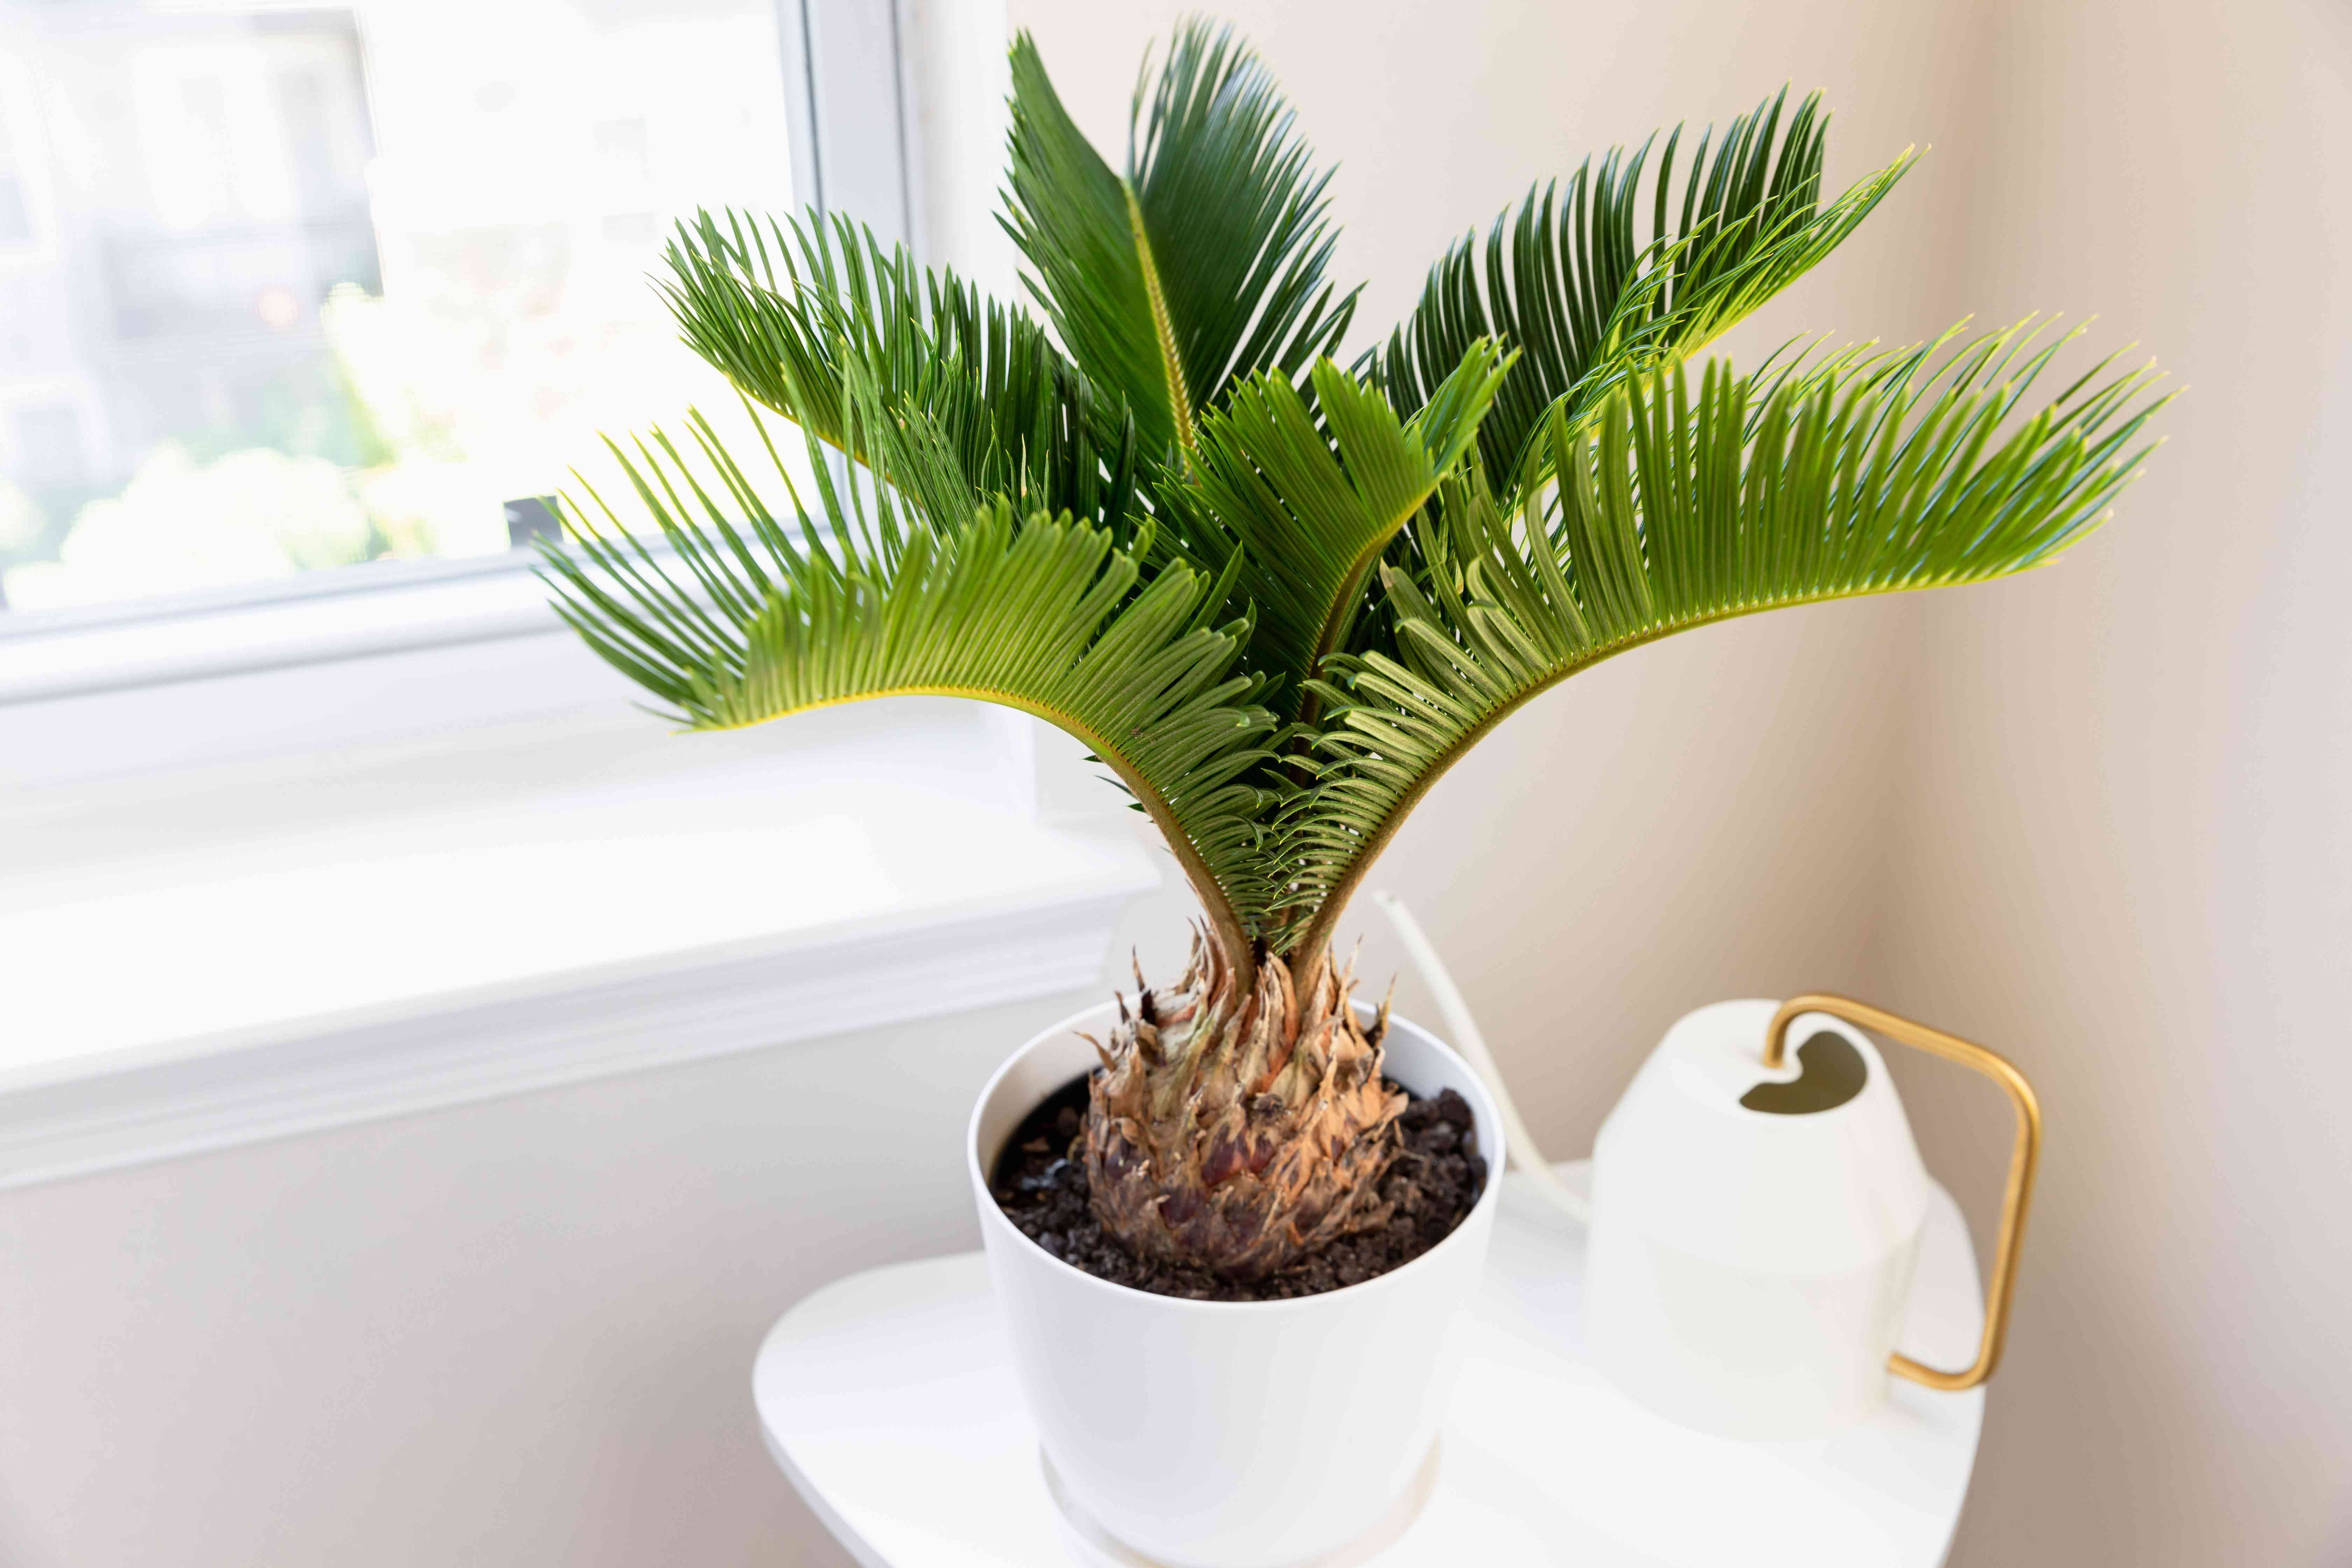 Sago palm in white pot with shaggy pineapple-like trunk and feather-like fronds next to white watering can and window